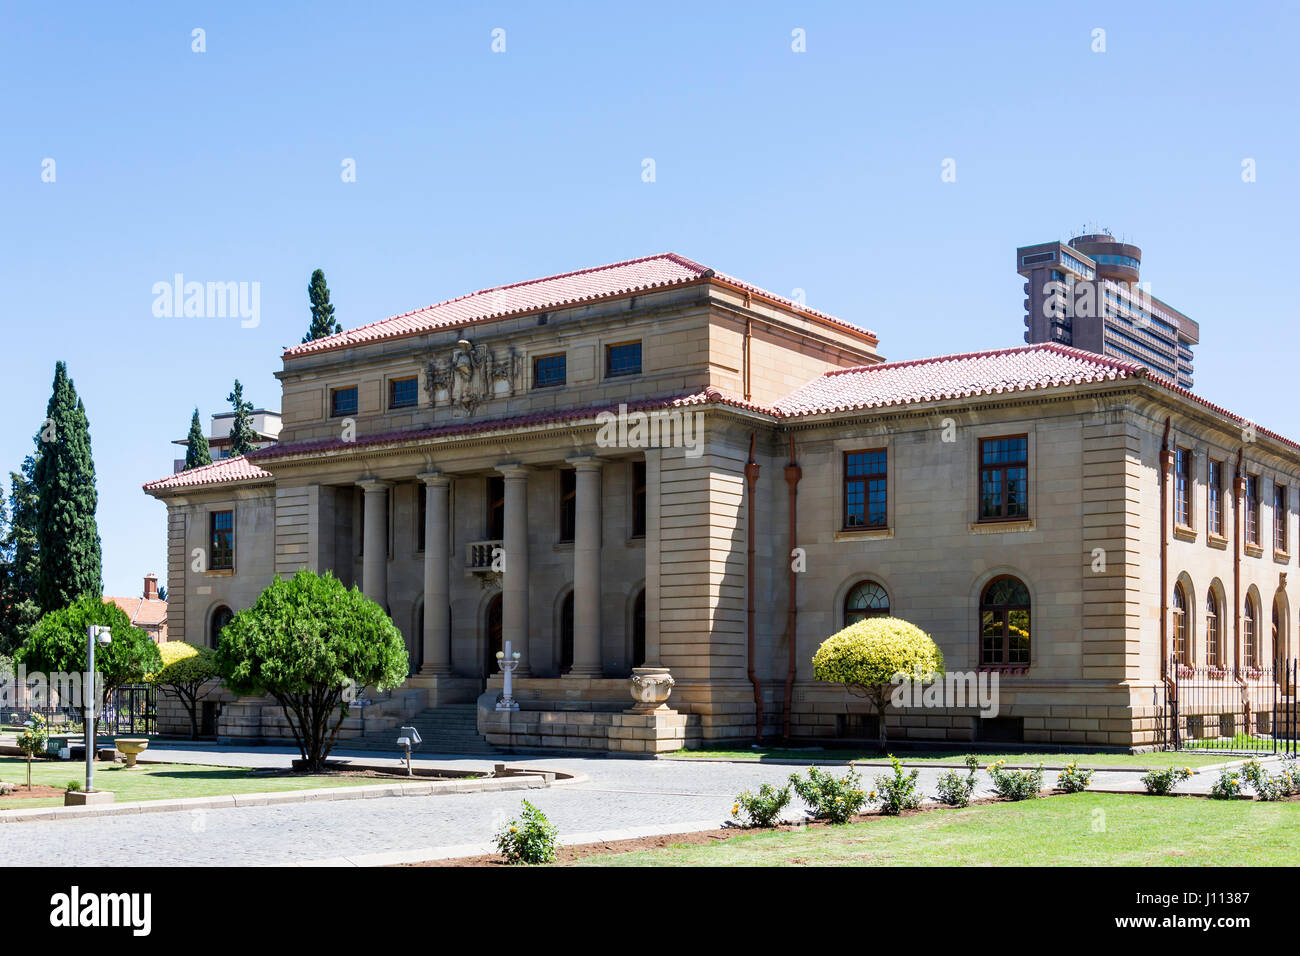 The Supreme Court of Appeal, President Brand Street, Bloemfontein, Free State Province, Republic of South Africa - Stock Image